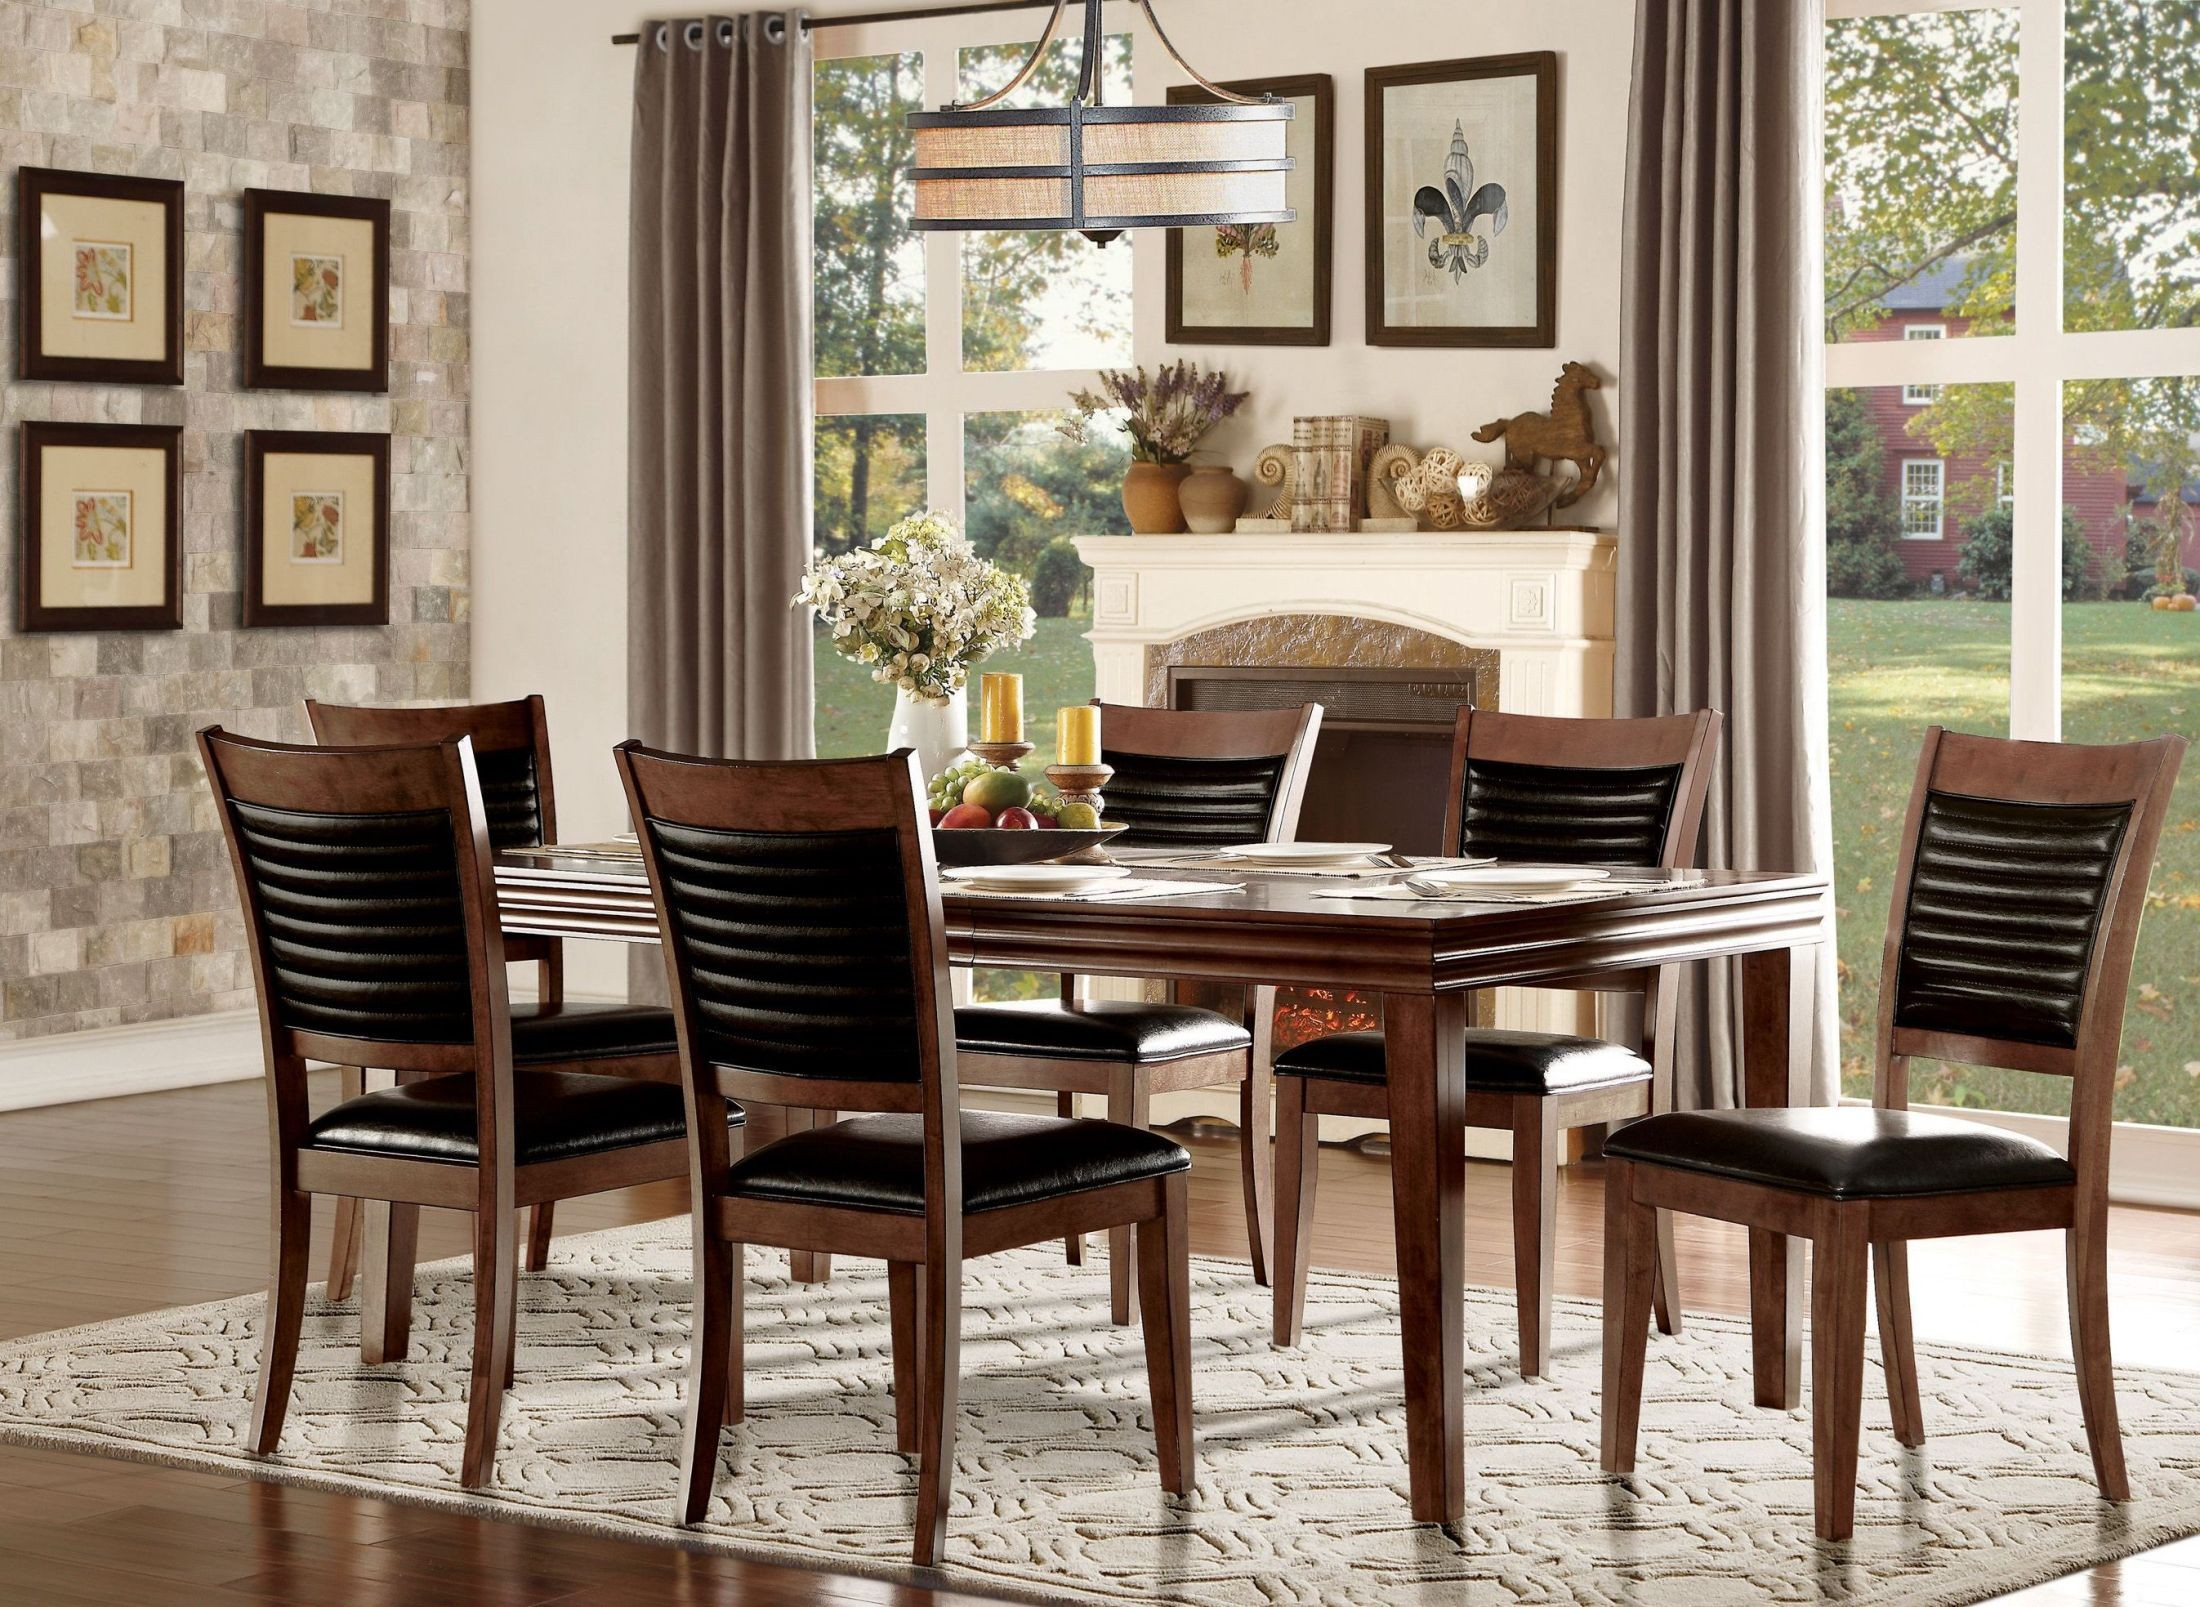 Used Dining Room Furniture Decoration Cabinets for Sale